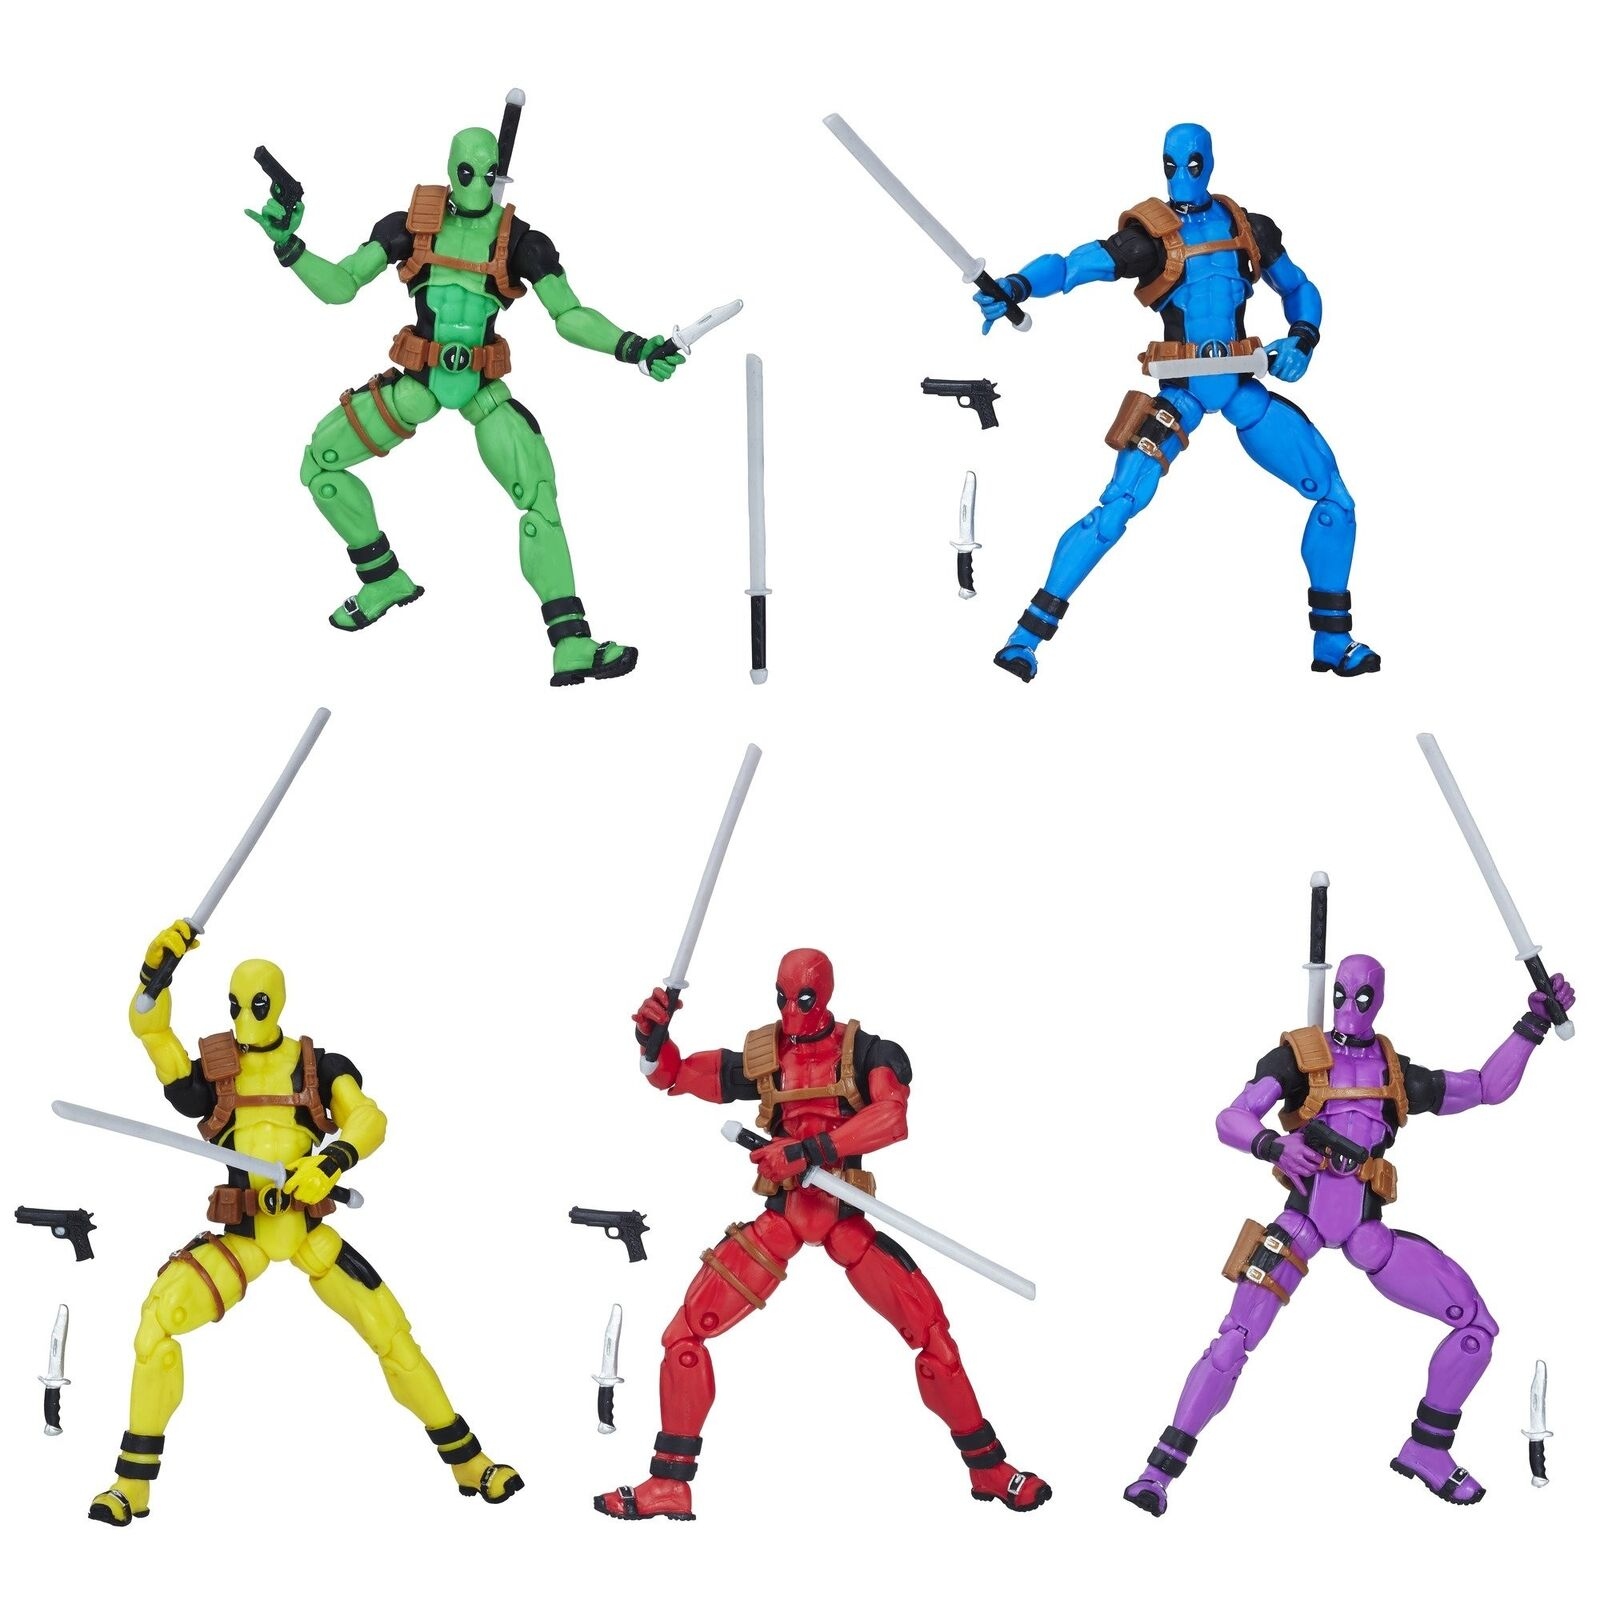 Marvel - regenbogen - gruppe fr deadpool action - figur